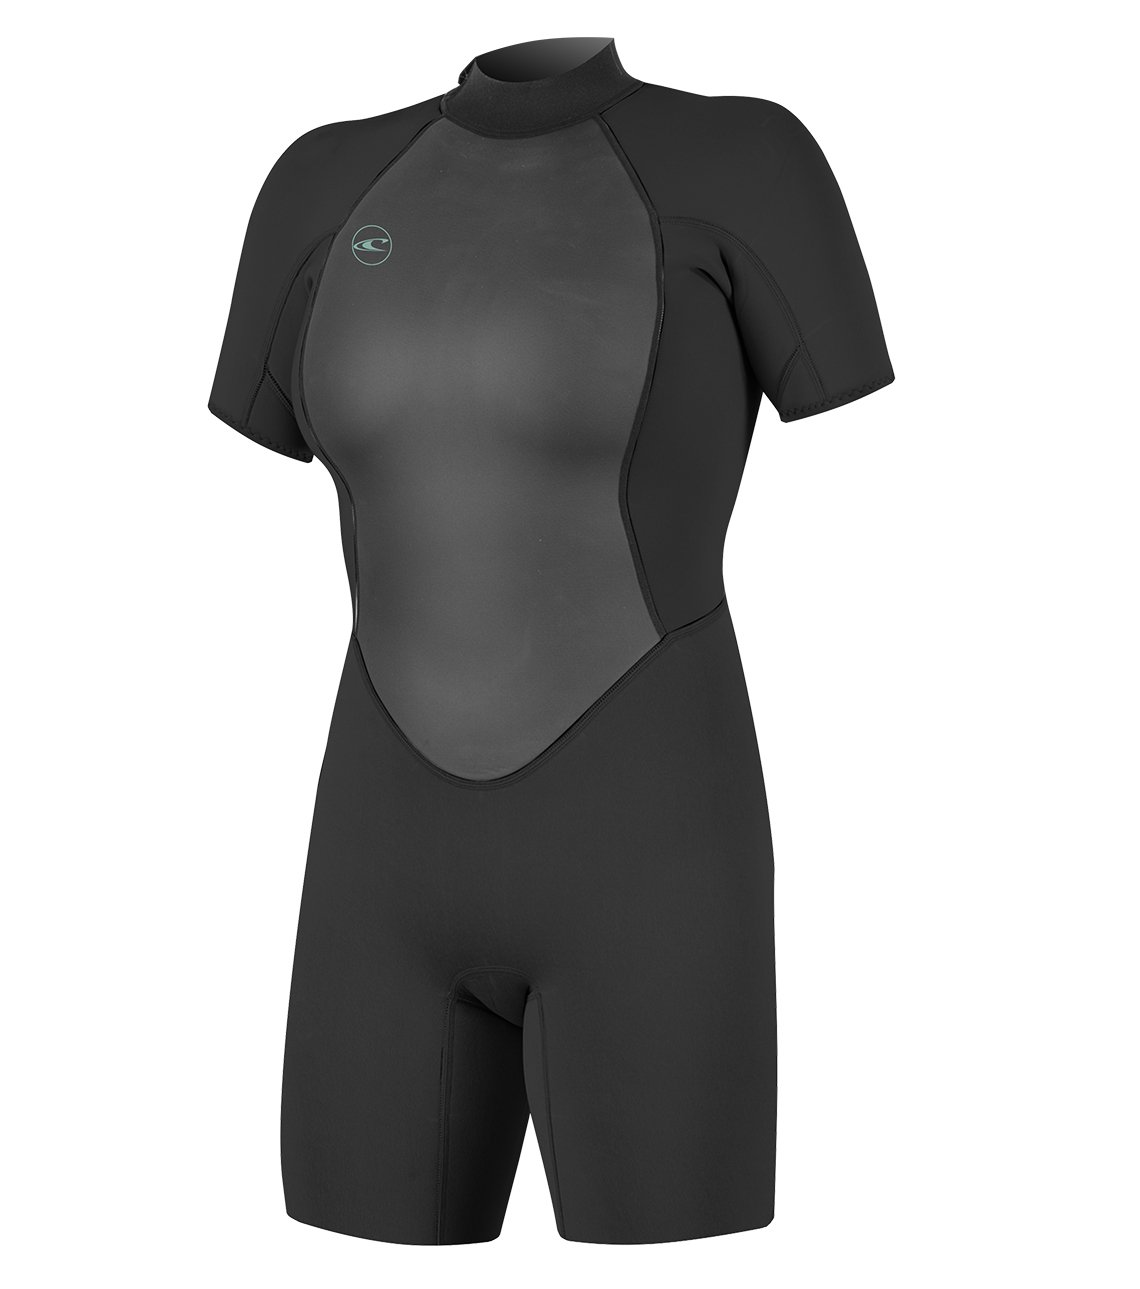 O'Neill Women's Reactor-2 2mm Back Zip Short Sleeve Spring Wetsuit, Black, 14 by O'Neill Wetsuits